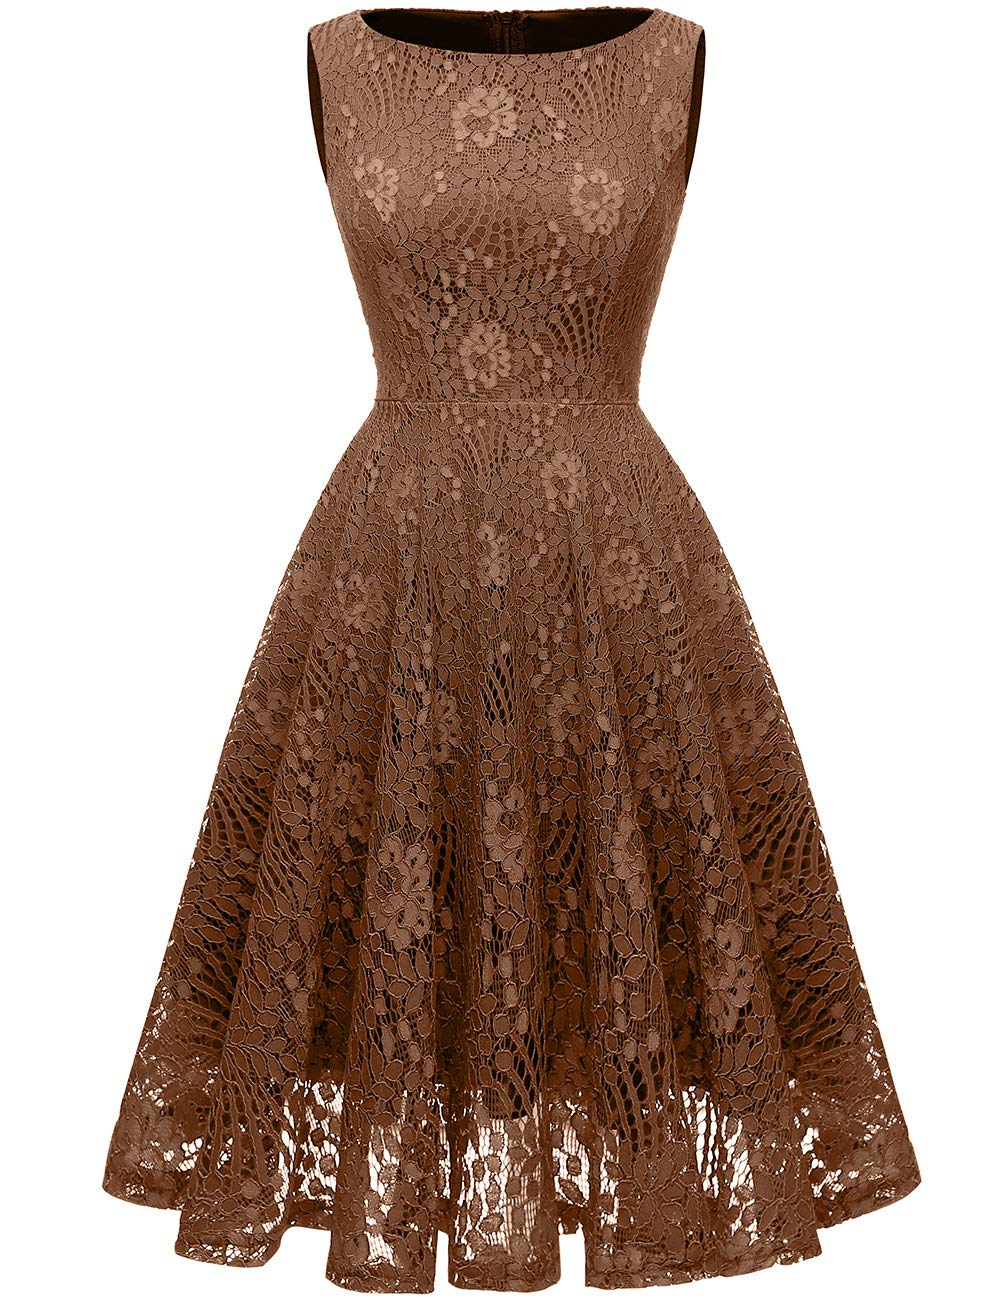 Available at Amazon: Kingfancy 50s Homecoming Dress 1950 Cocktail Lace Vintage Dresses Crew Neck Prom Bridesmaid Dress